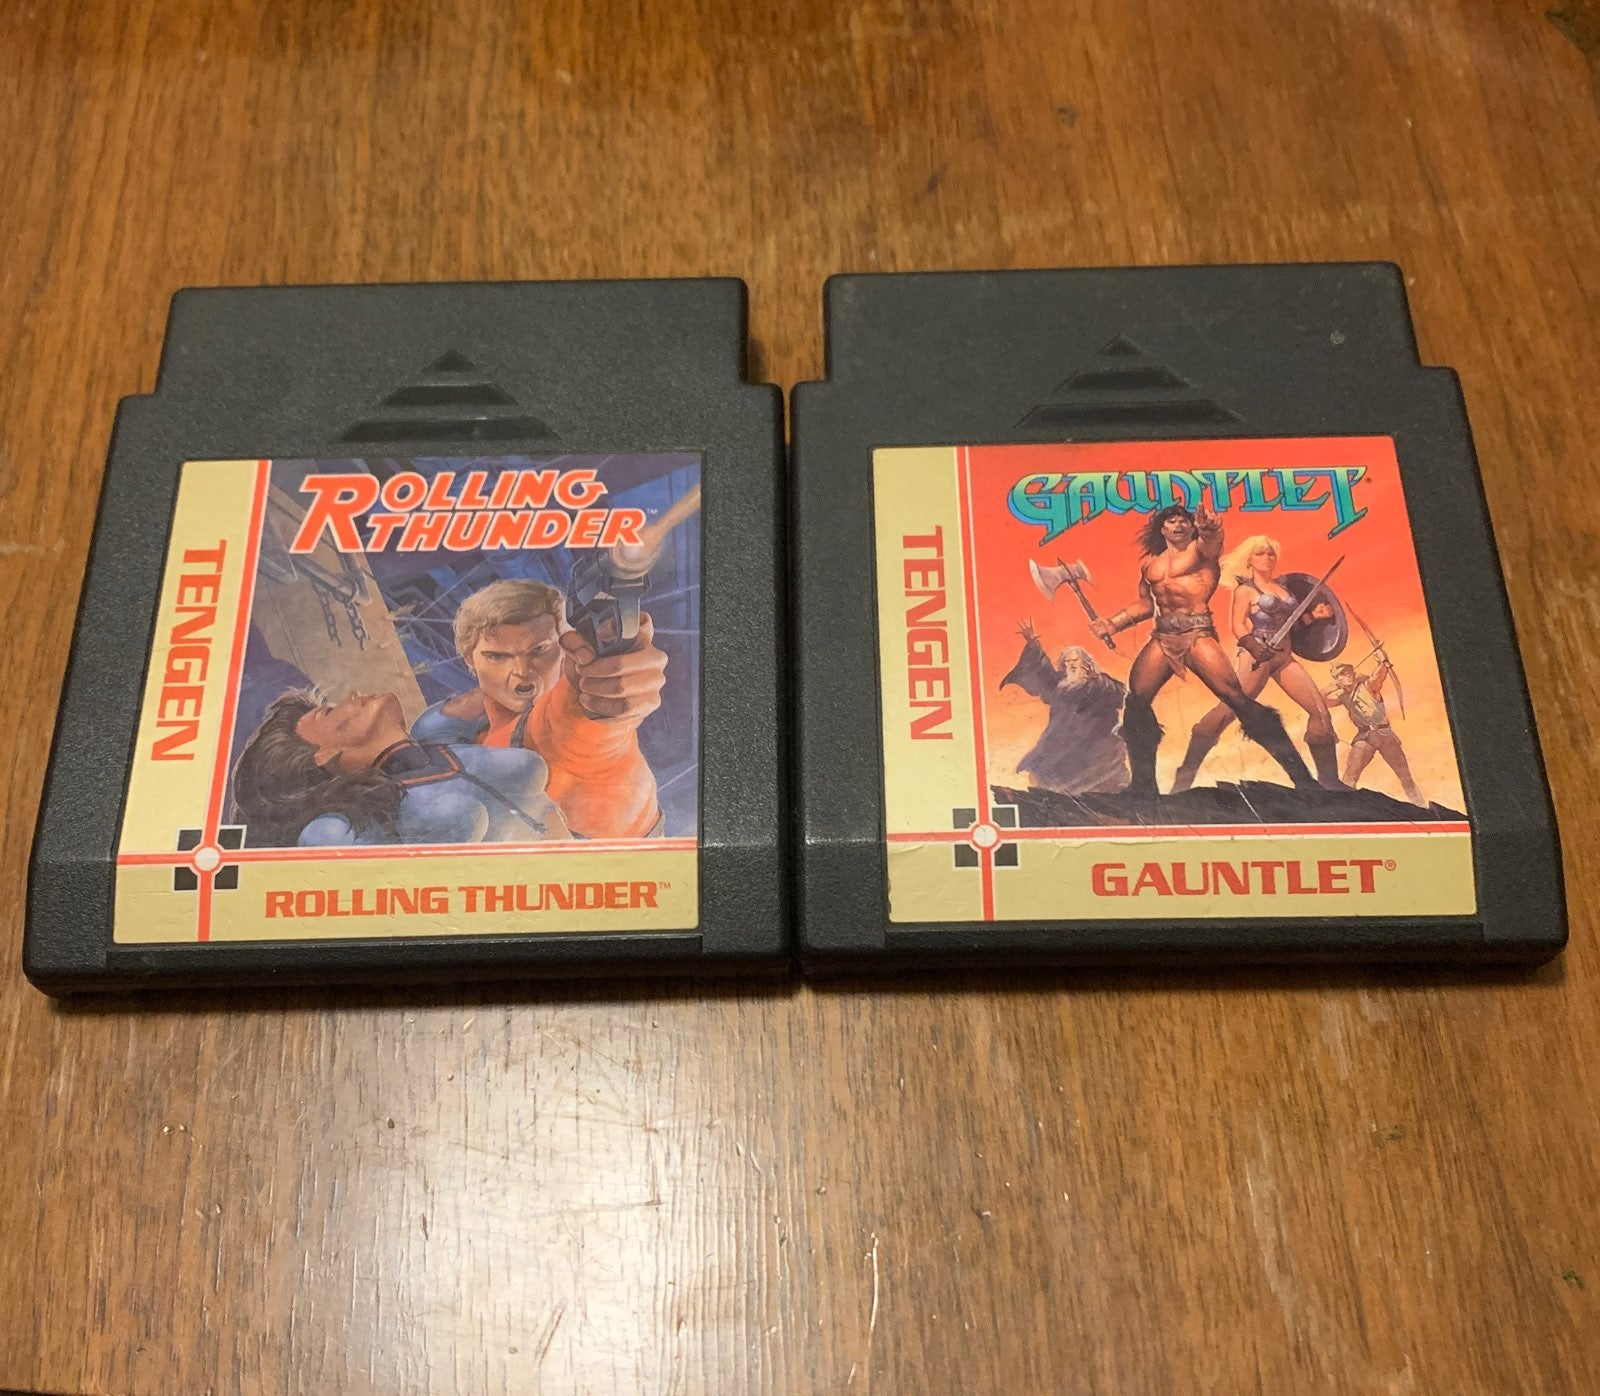 Rolling thunder and gauntlet for nes